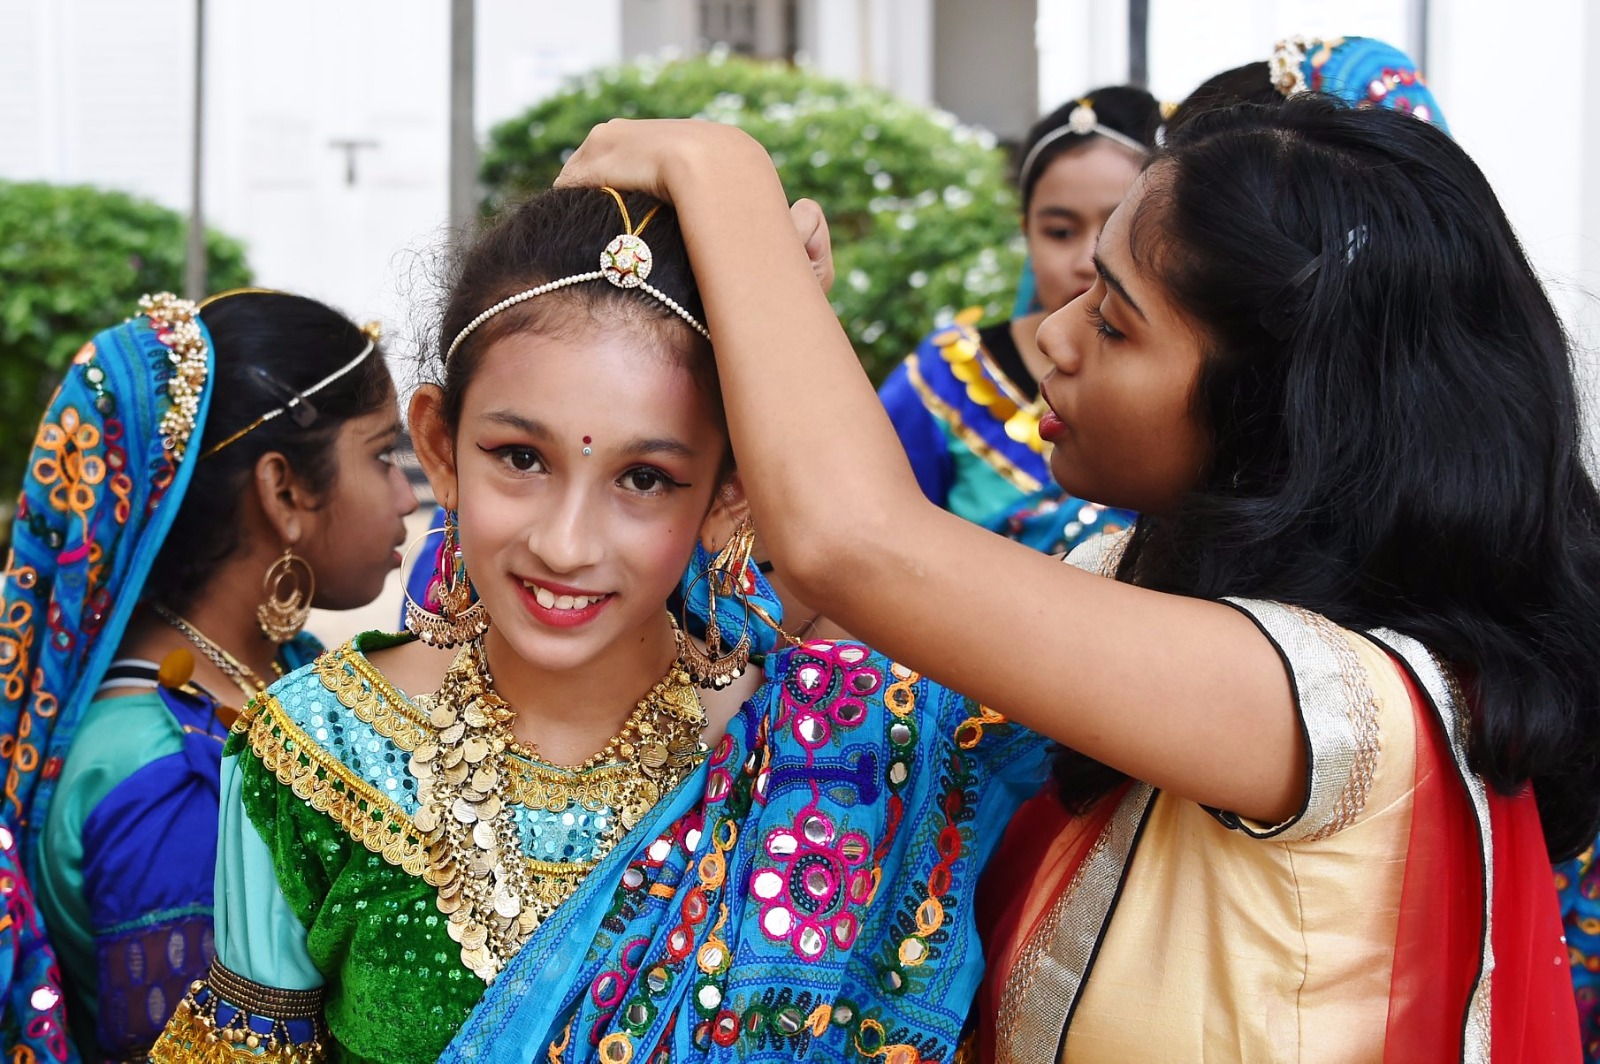 An Indian school kid gets ready for her performance at the Republic Day Celebrations at the Indian High Commission in Singapore. Photo courtesy: Indian High Commission